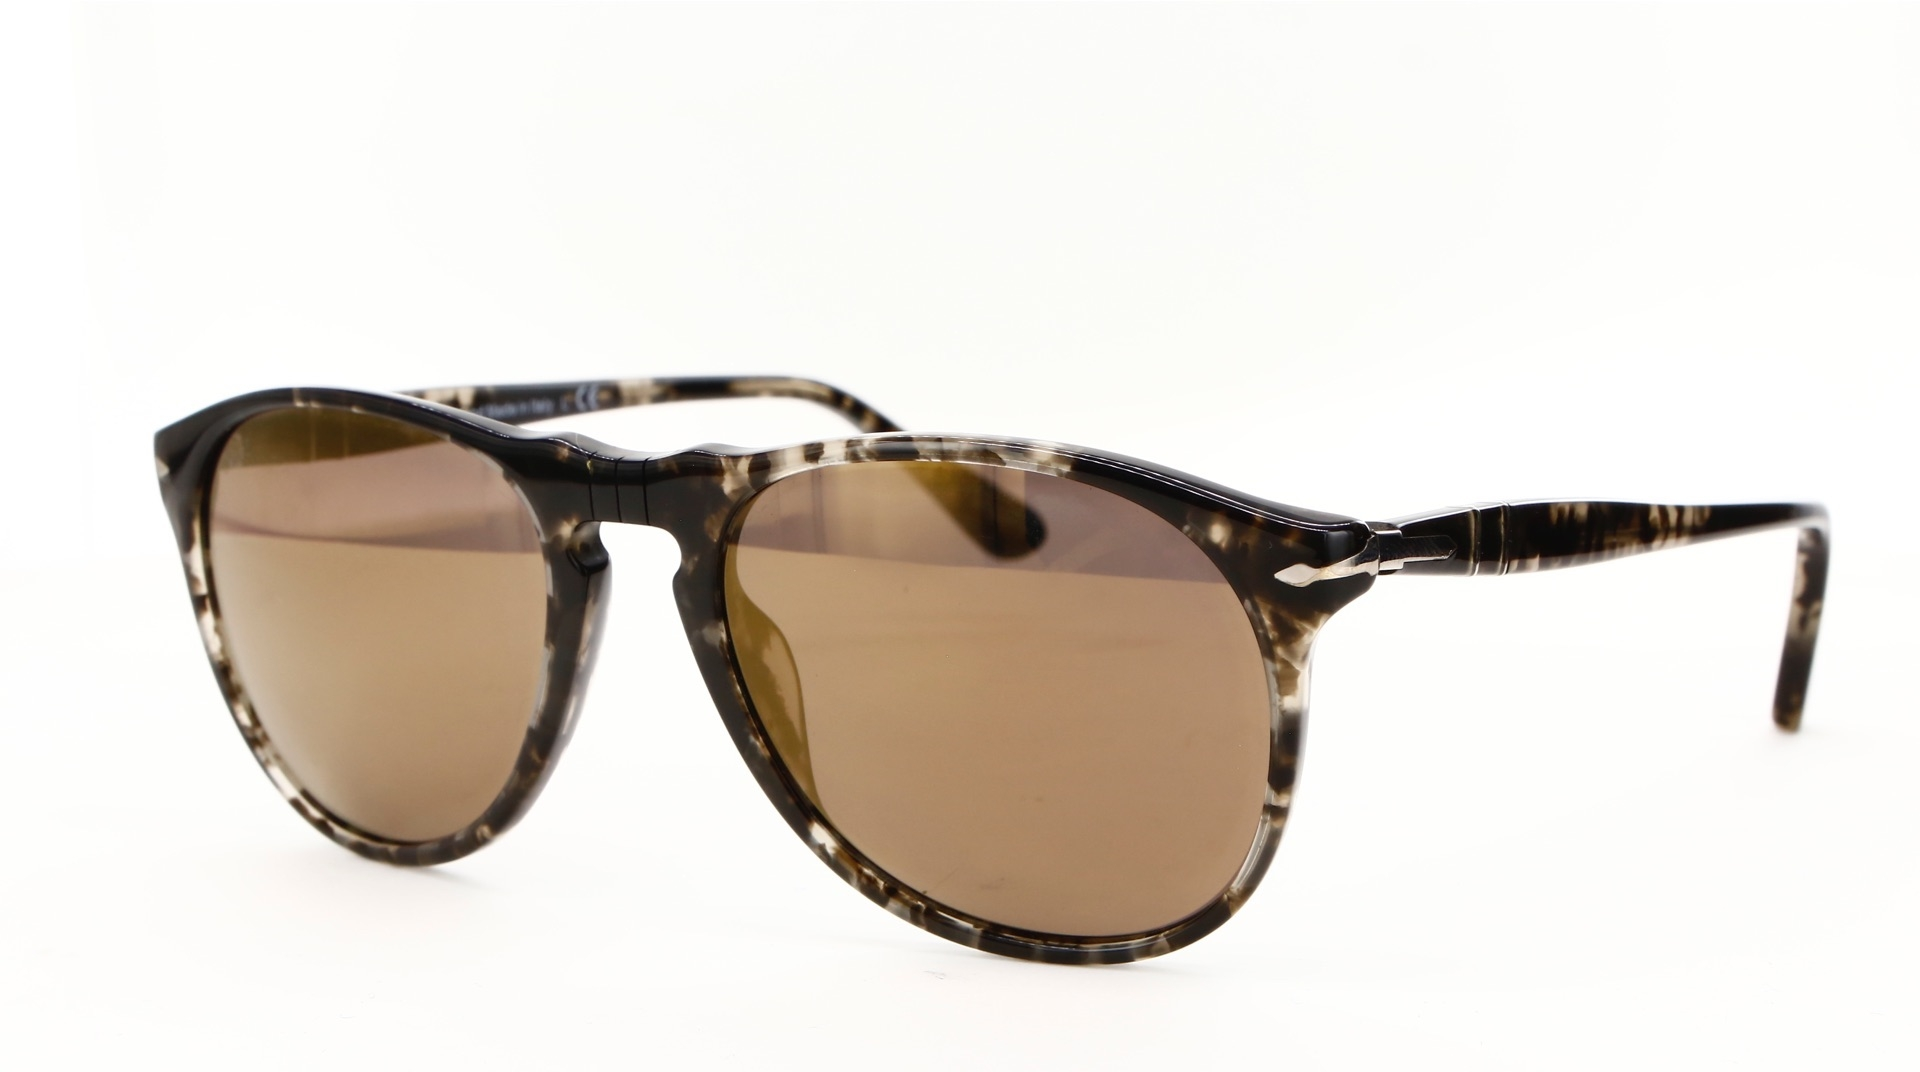 Persol - ref: 79276